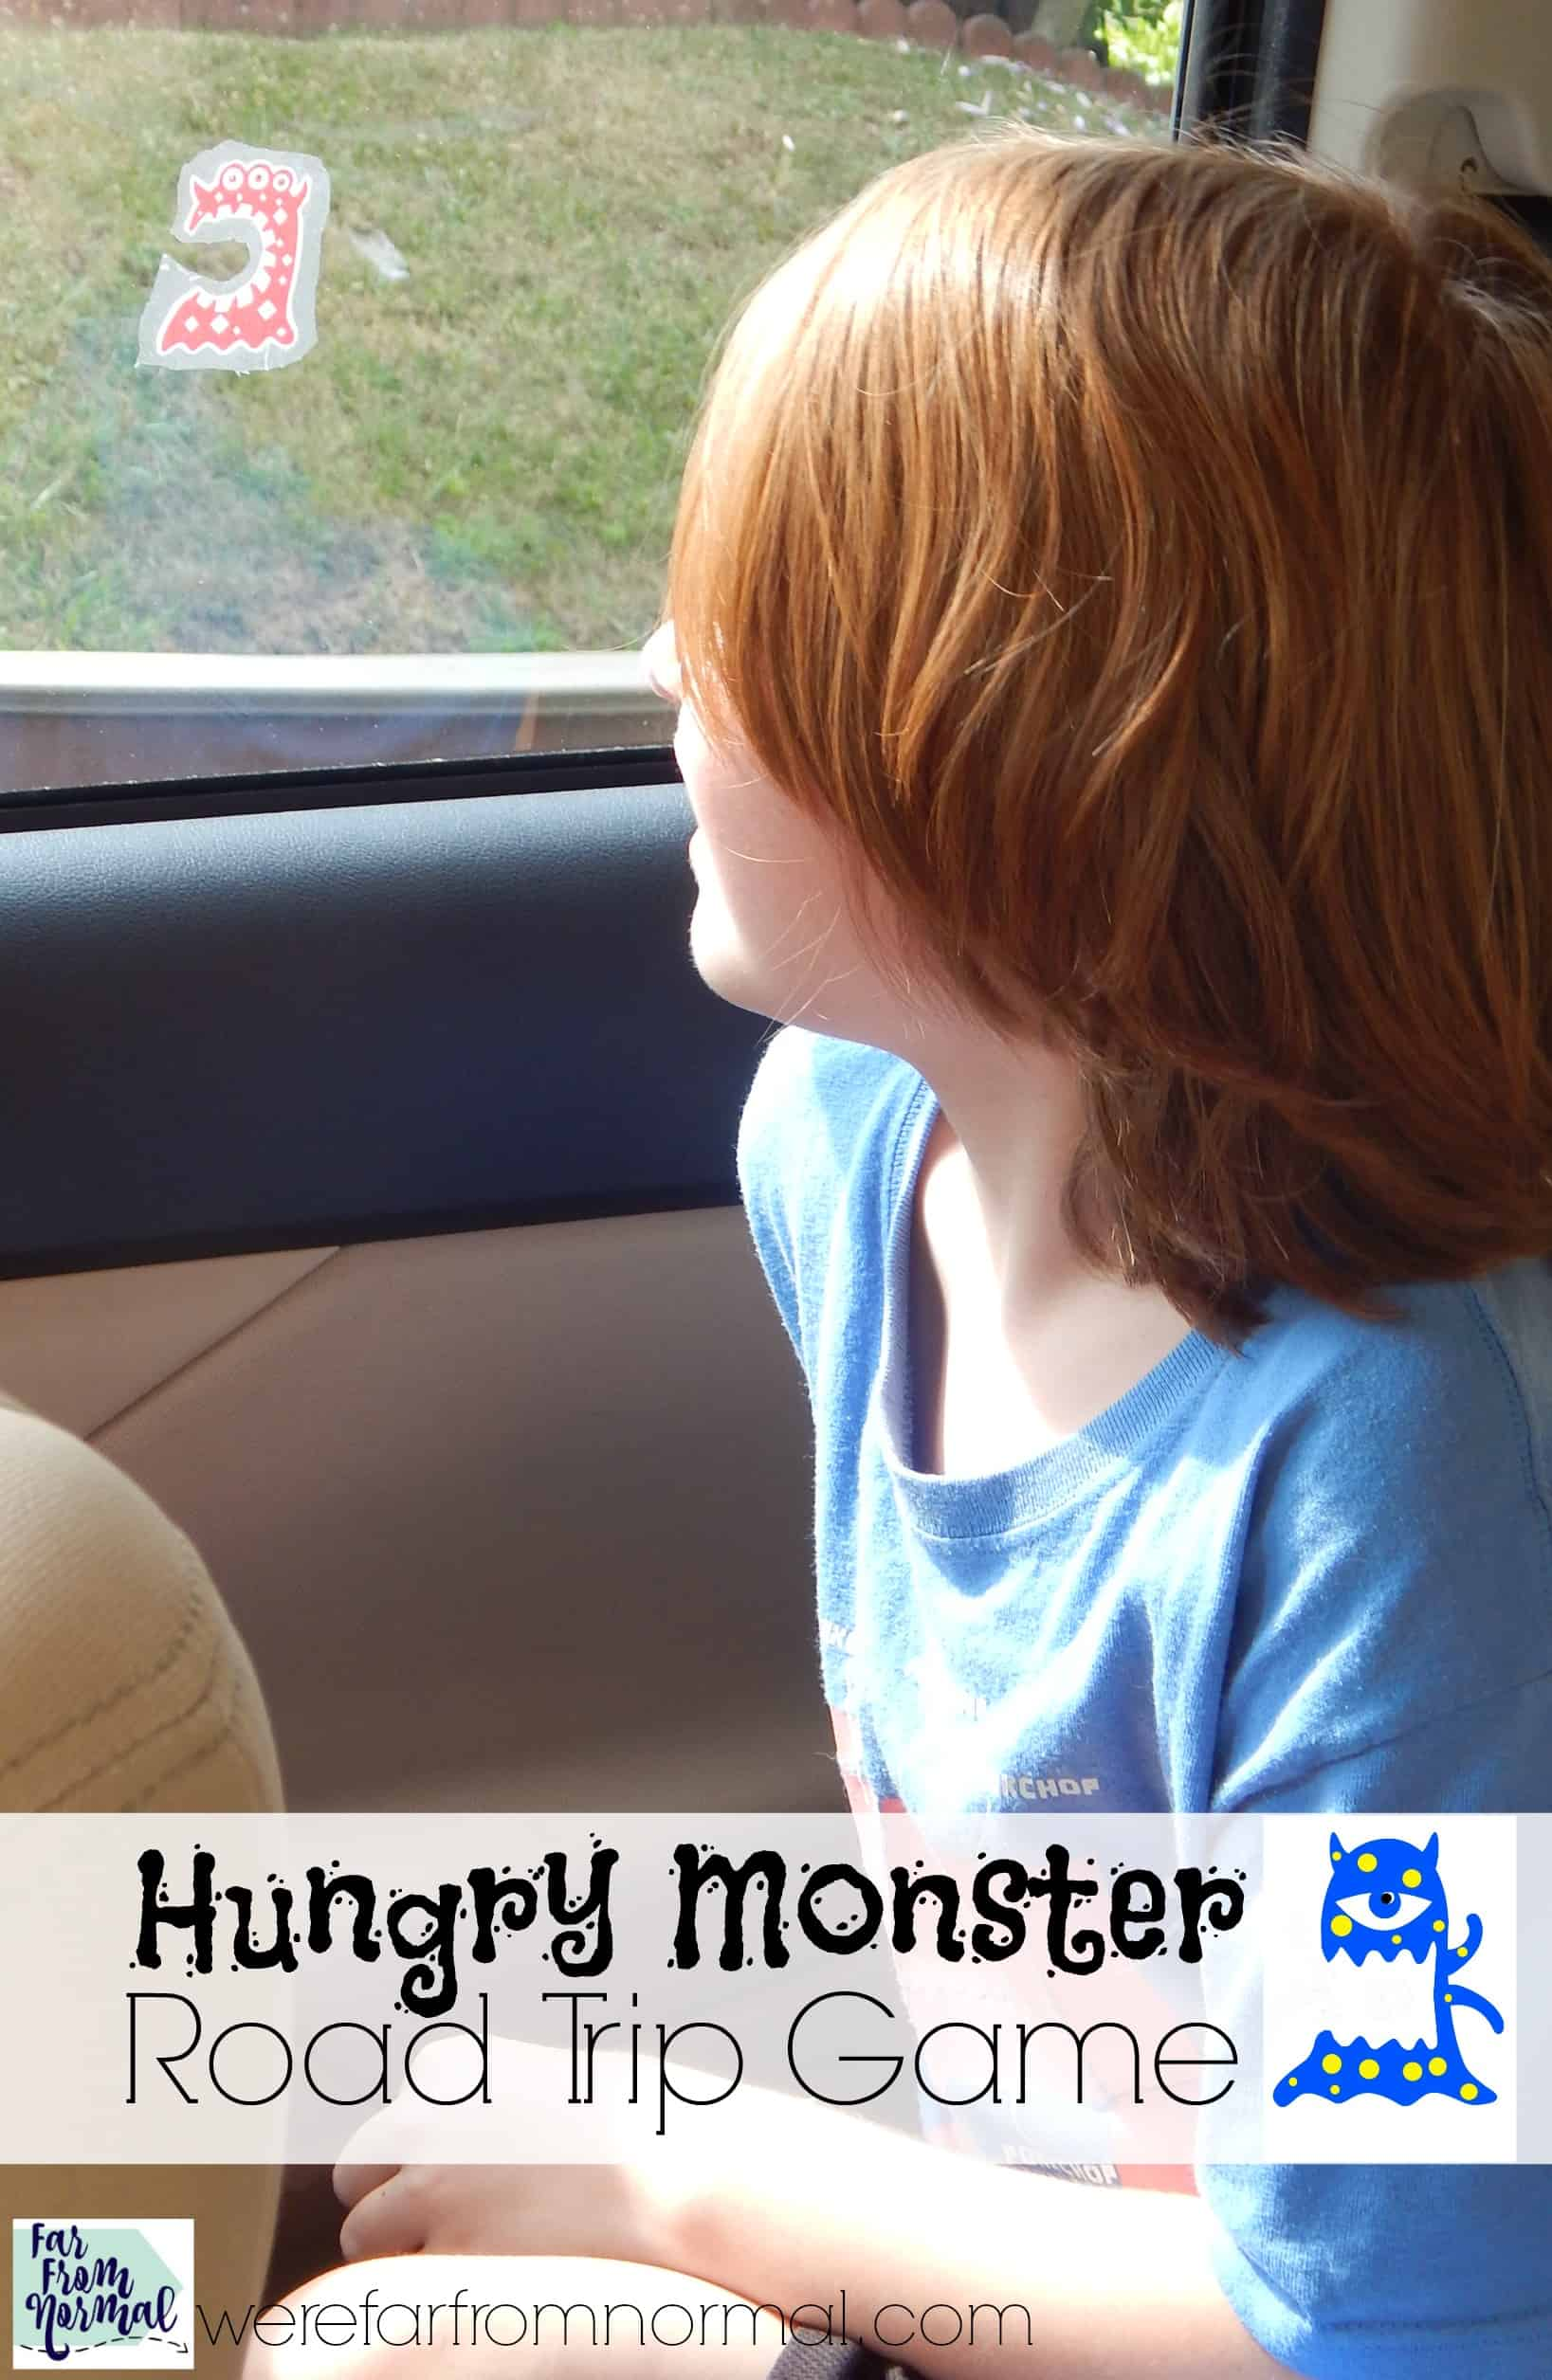 Hungry Monster Road Trip Game (w/ free printables!)